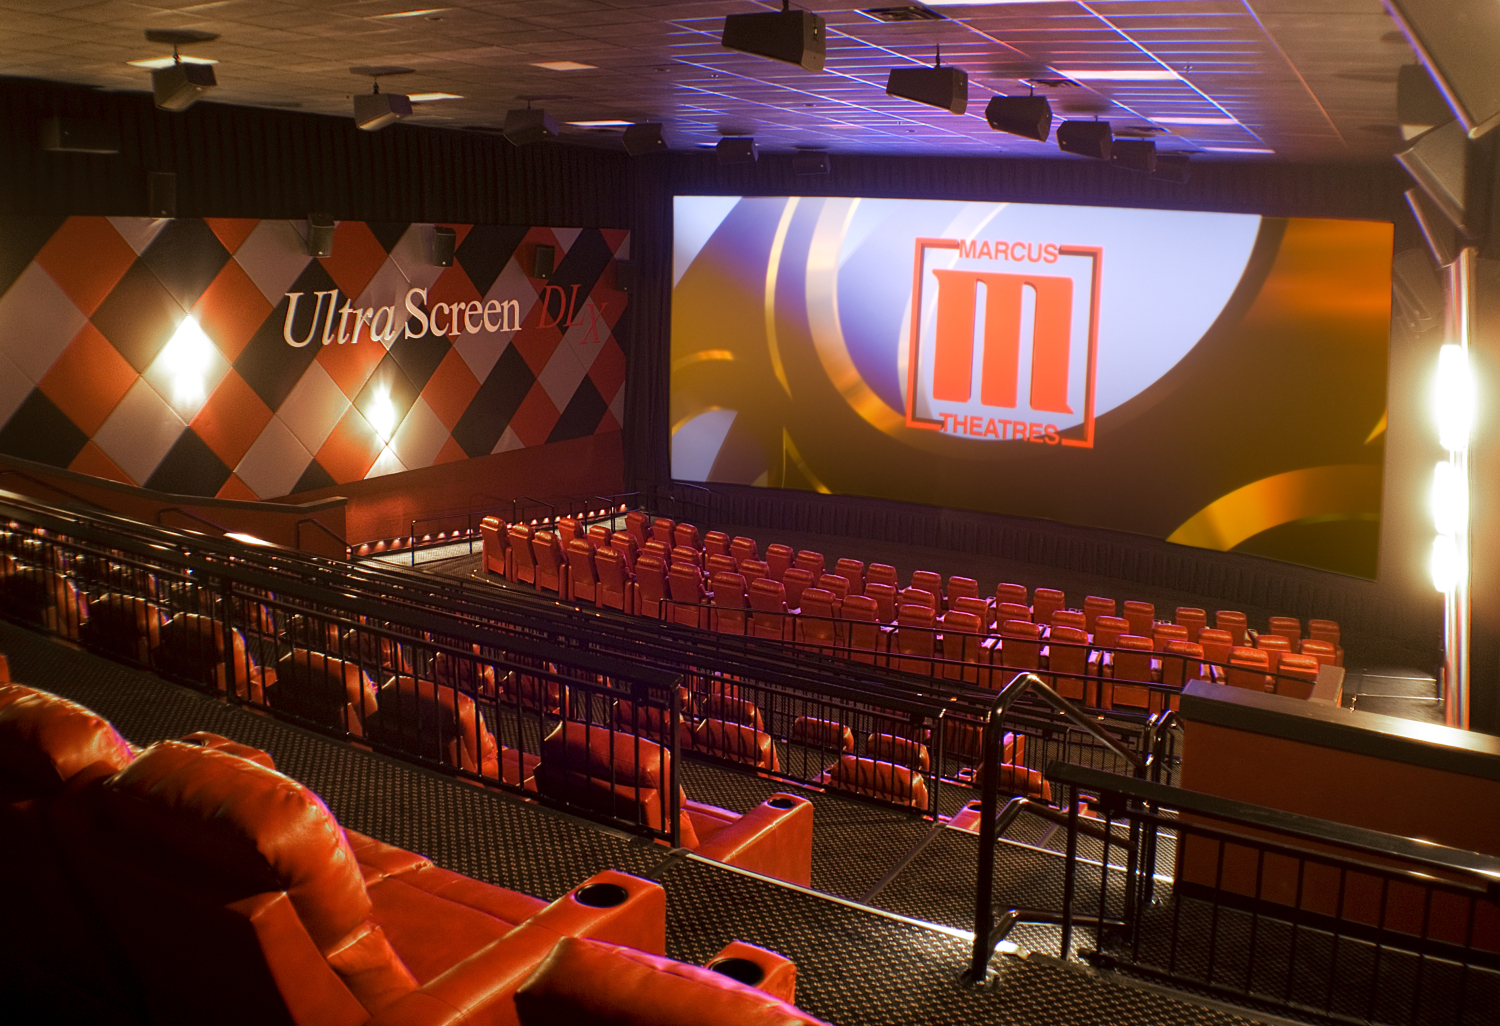 The Marcus South Pointe Cinema is your premiere entertainment destination with % DreamLounger recliners, including our spectacular SuperScreen DLX auditoriums with Dolby Atmos sound! The theatre's lobby now includes a brand new food and beverage outlet, Reel Sizzle®.